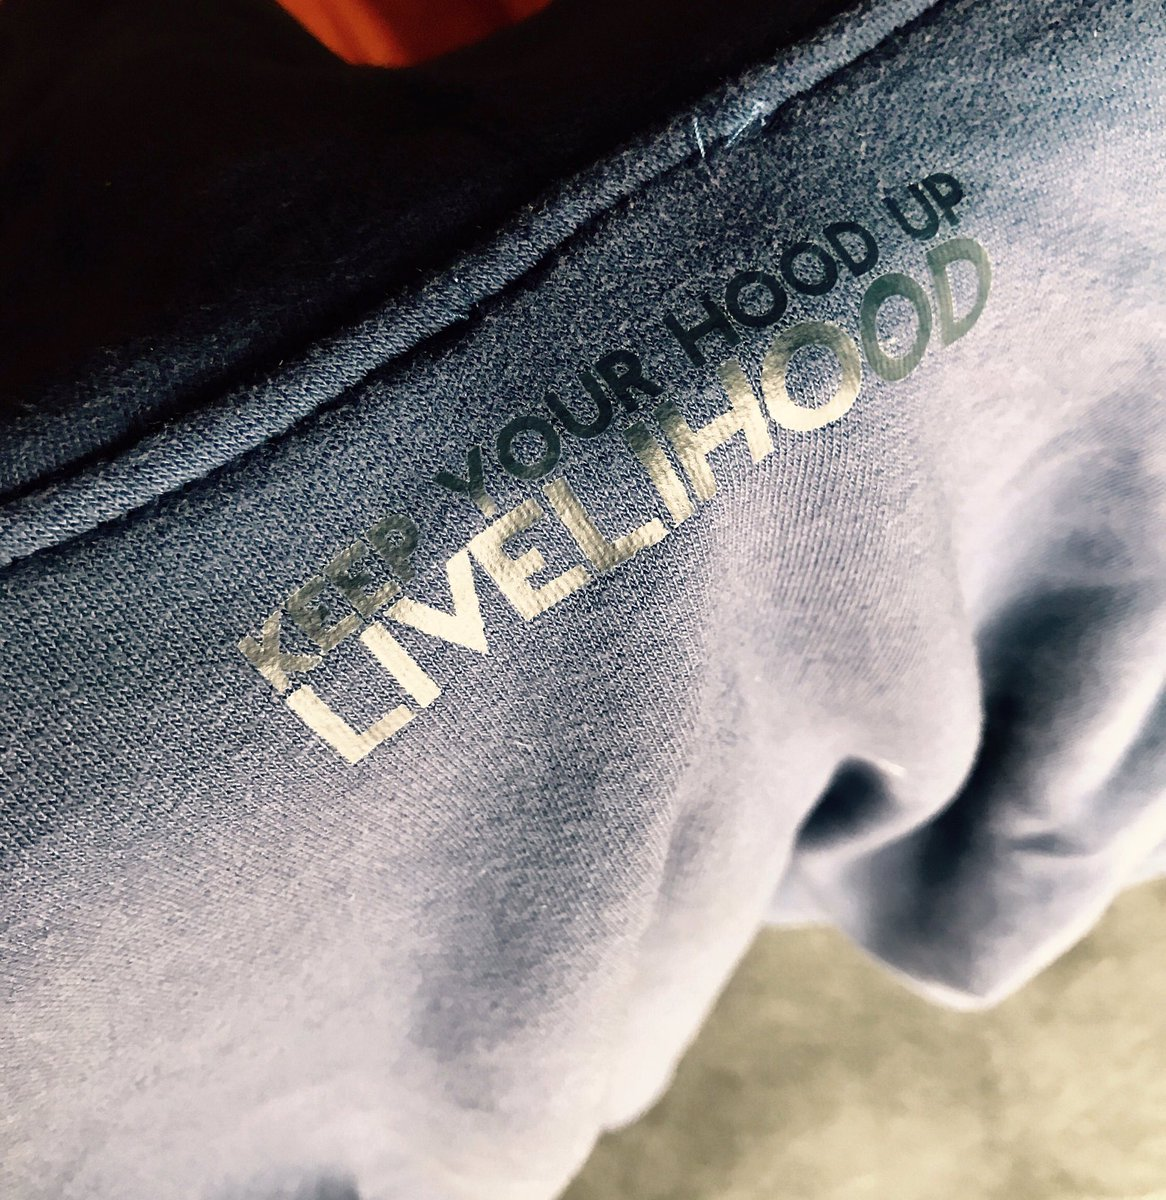 Love what Ashley Biden and @Gilt are doing with @Livelihood2017. I'm a #LivelihoodPartner. #getinvolvedinyourhood https://t.co/VVnIJZYZqC